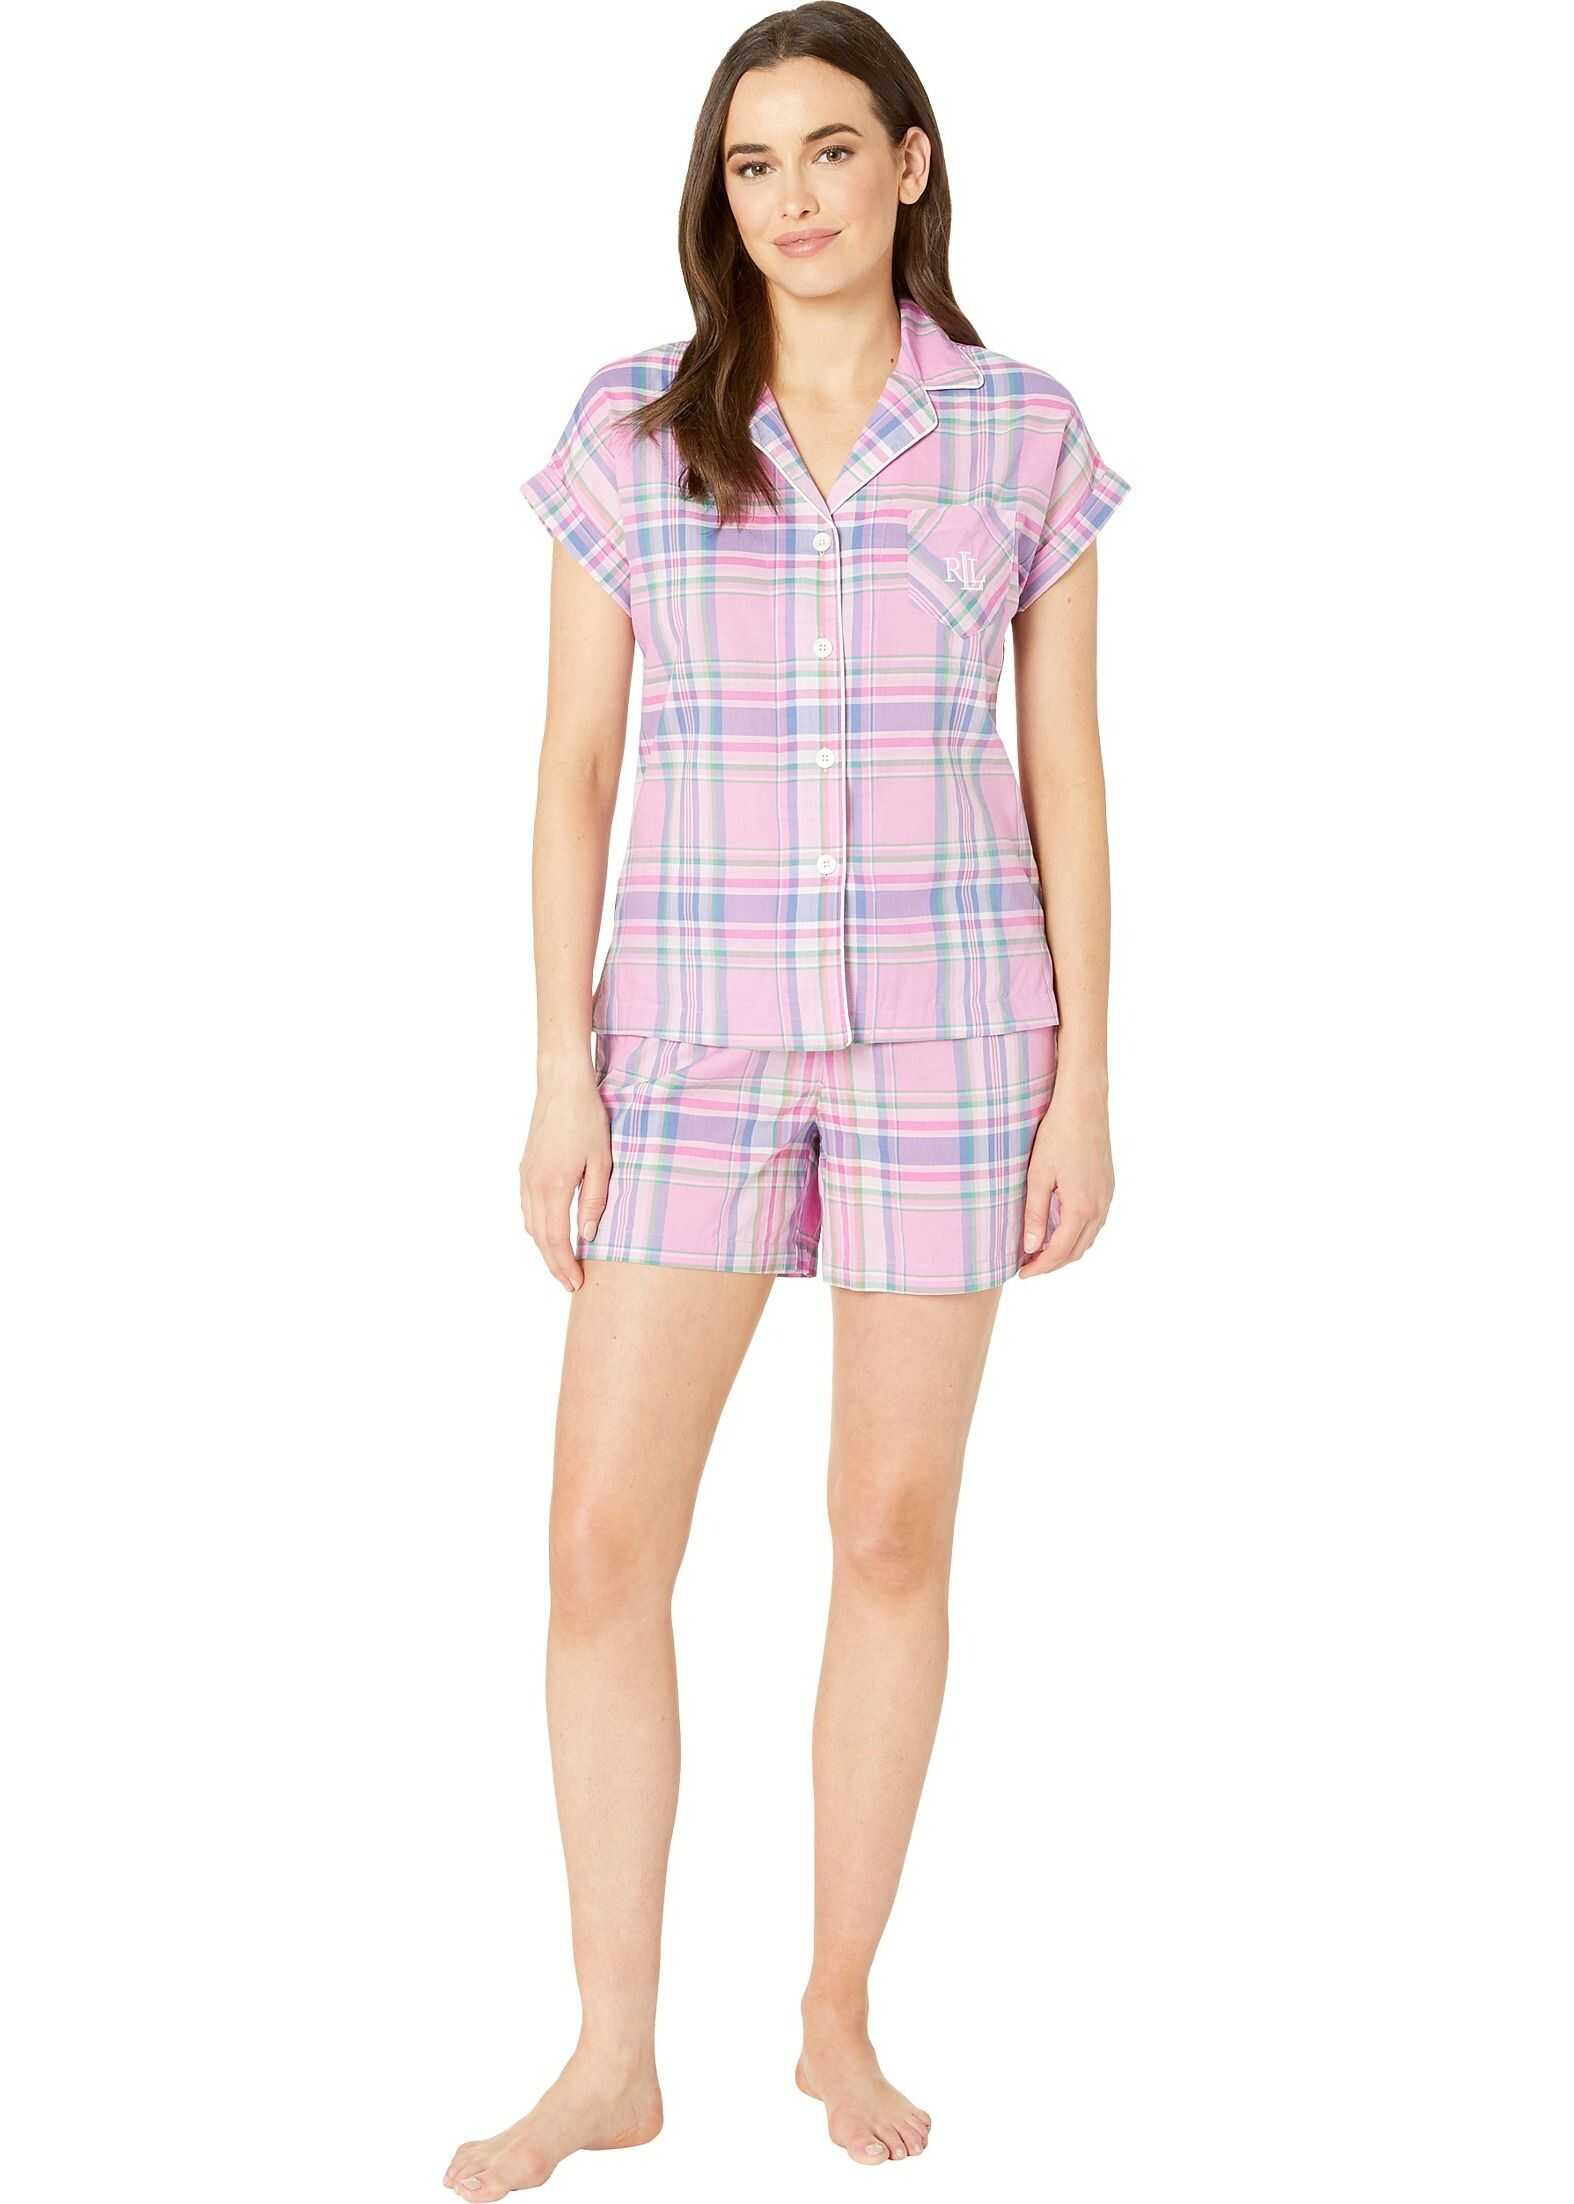 Ralph Lauren Dolman Sleeve Notched Collar Boxer Pajama Set Pink Plaid